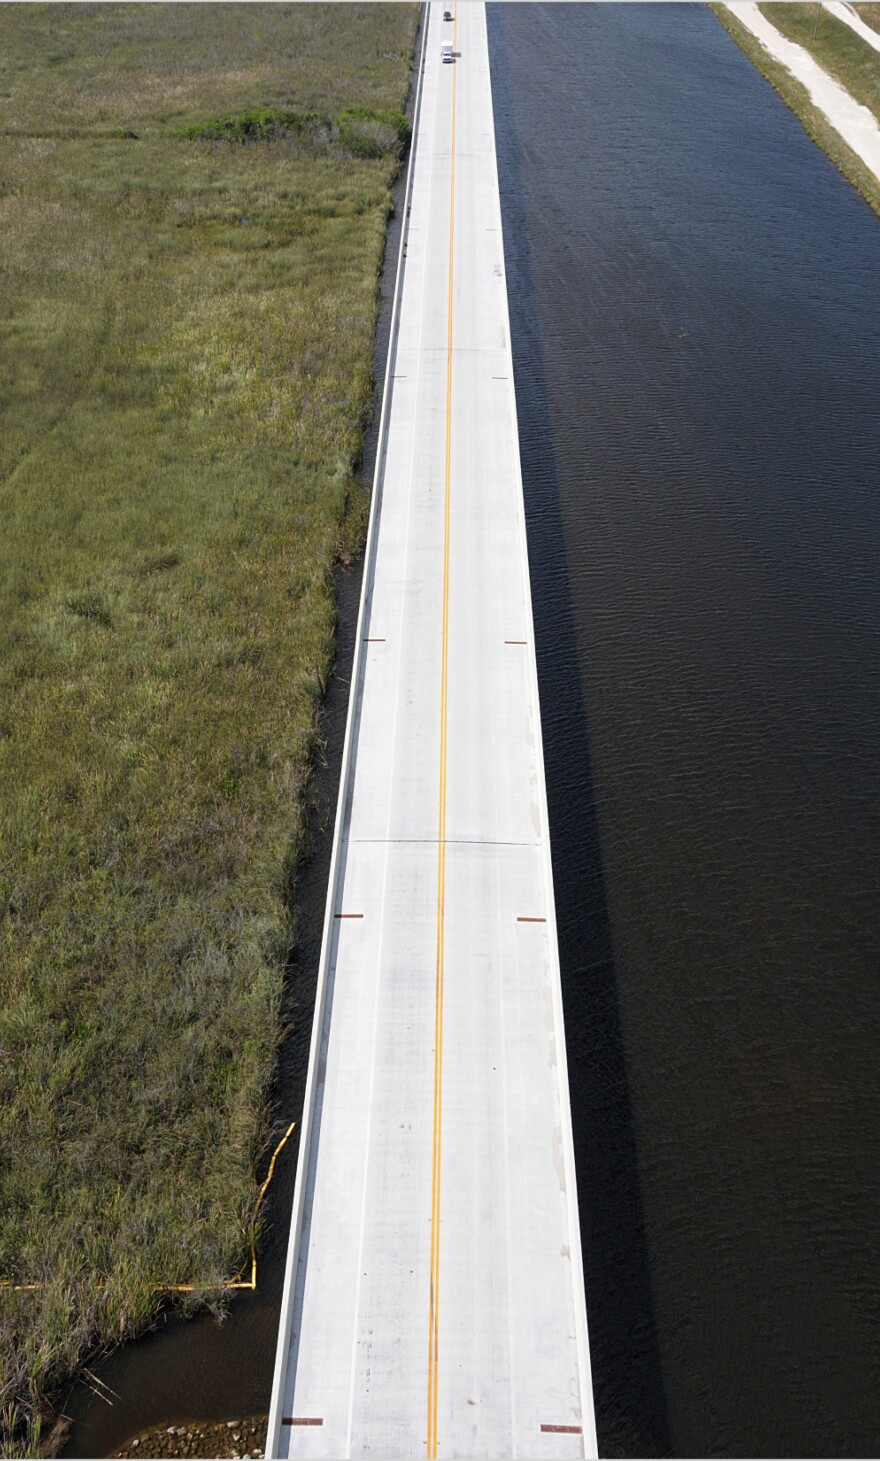 Aerial view of the Tamiami Trail (U.S. 41)